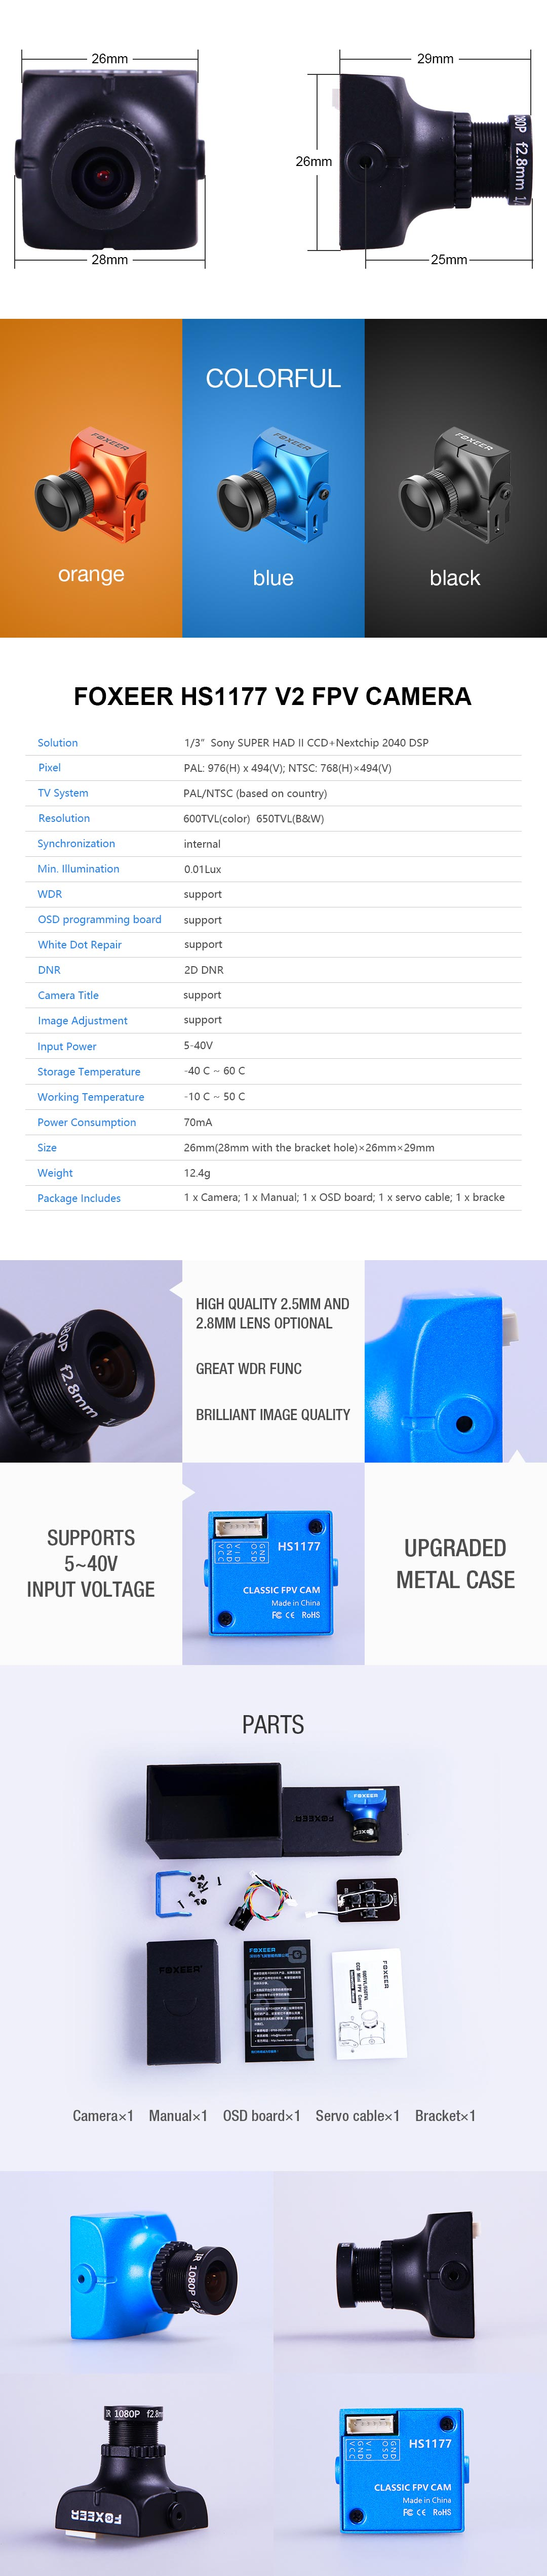 Foxeer HS1177 V2 600TVL FPV CCD Camera with 2.8mm Lens